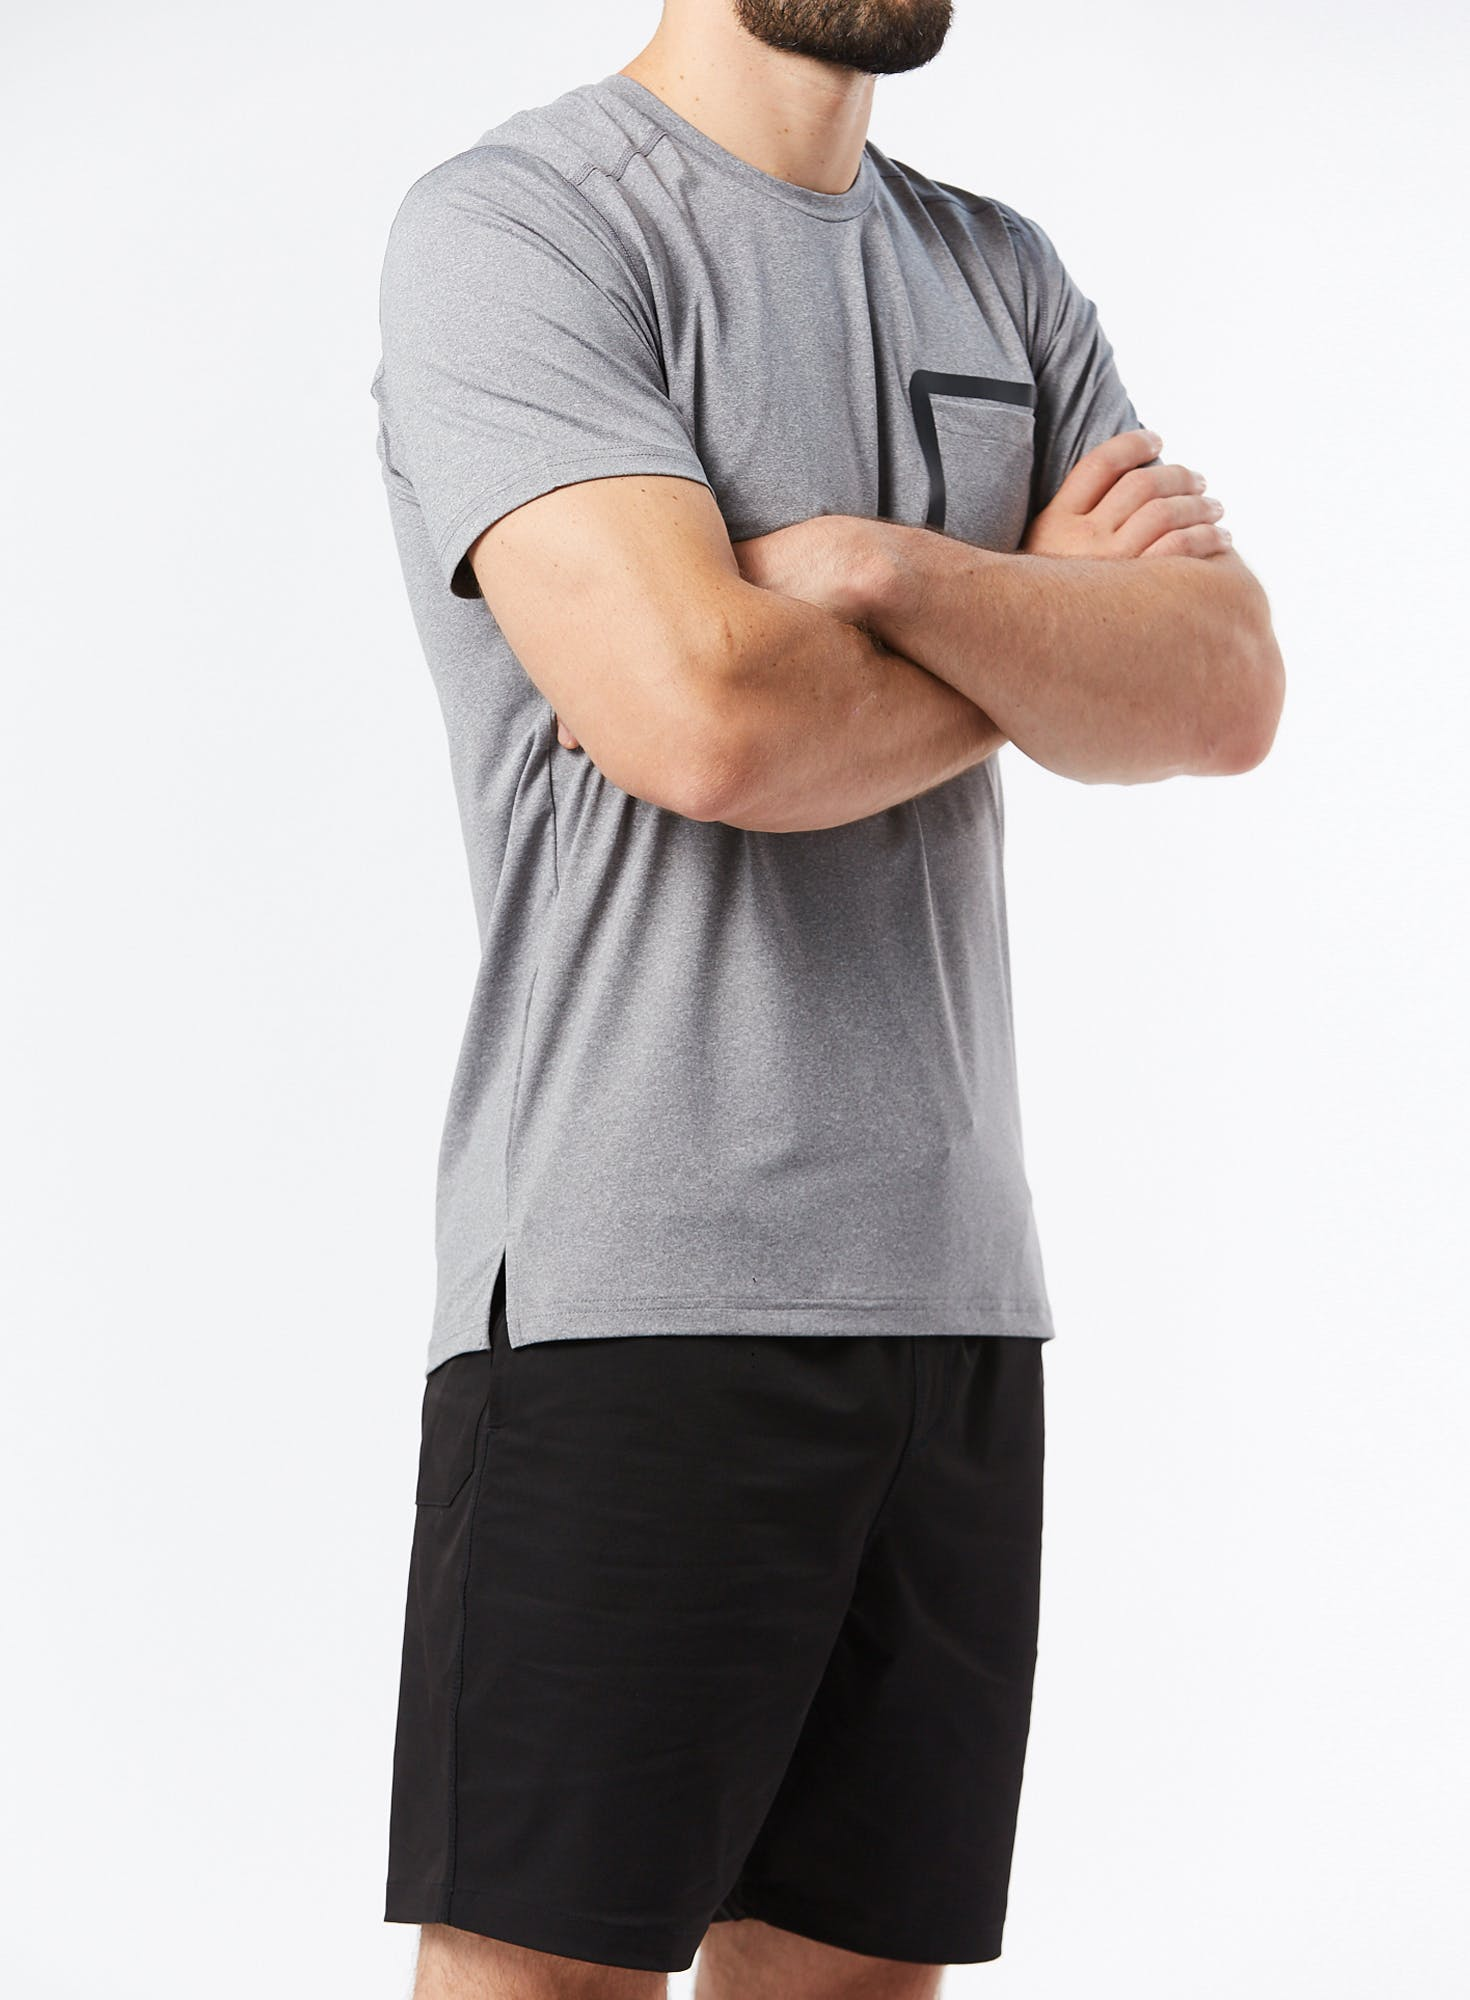 Tech Stretch Tee Bonus Image